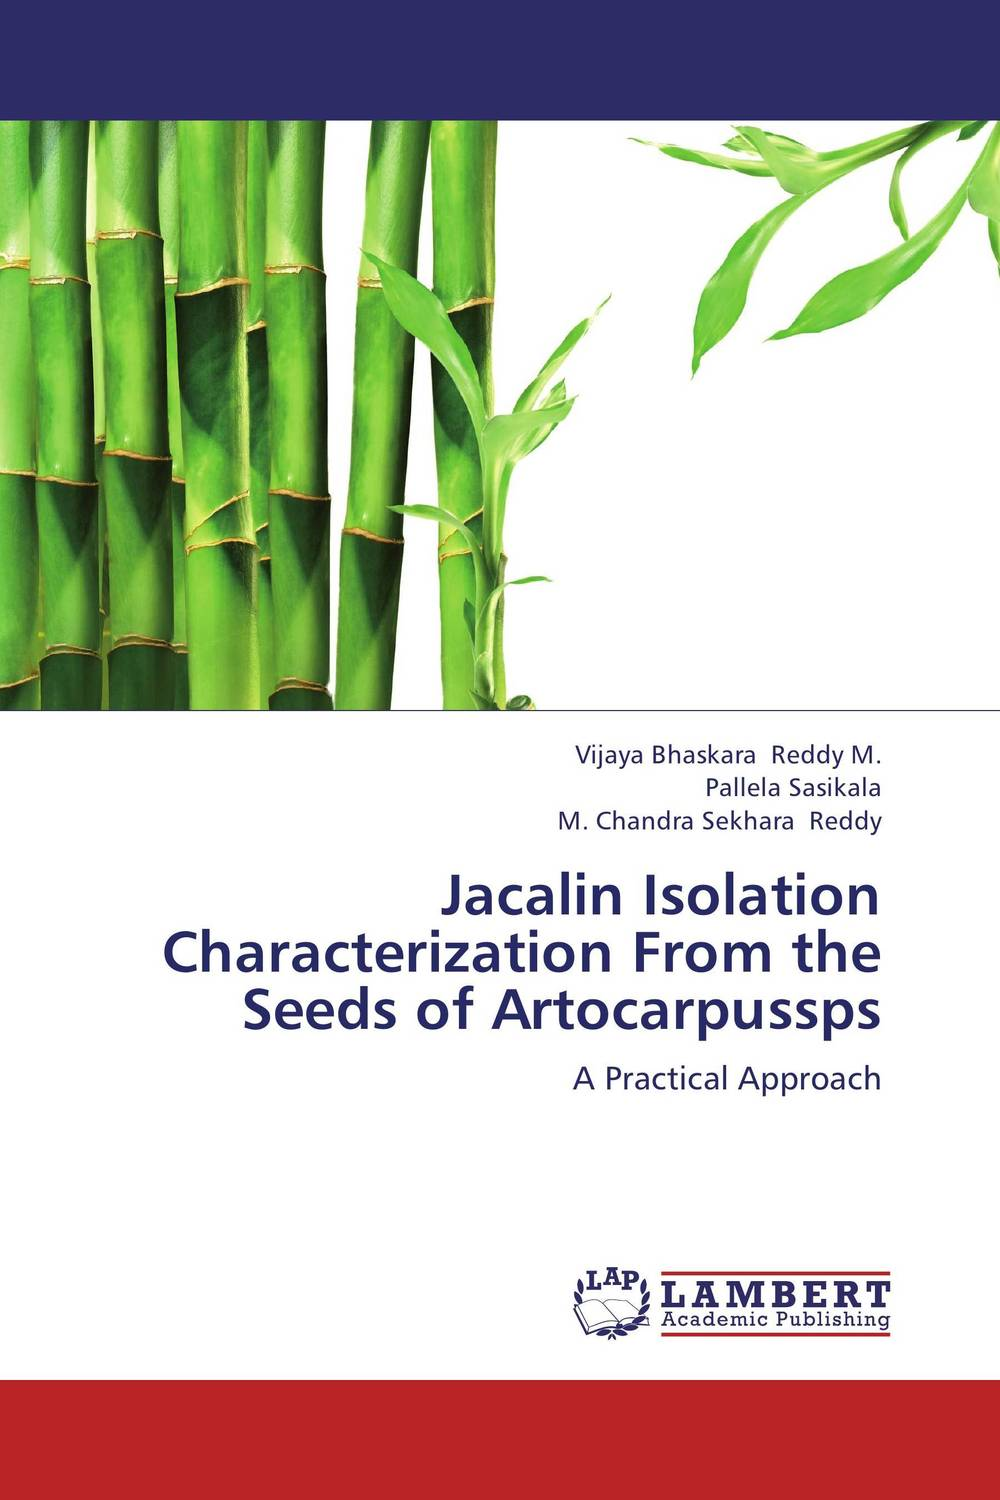 Jacalin Isolation Characterization From the Seeds of Artocarpussps seeing things as they are